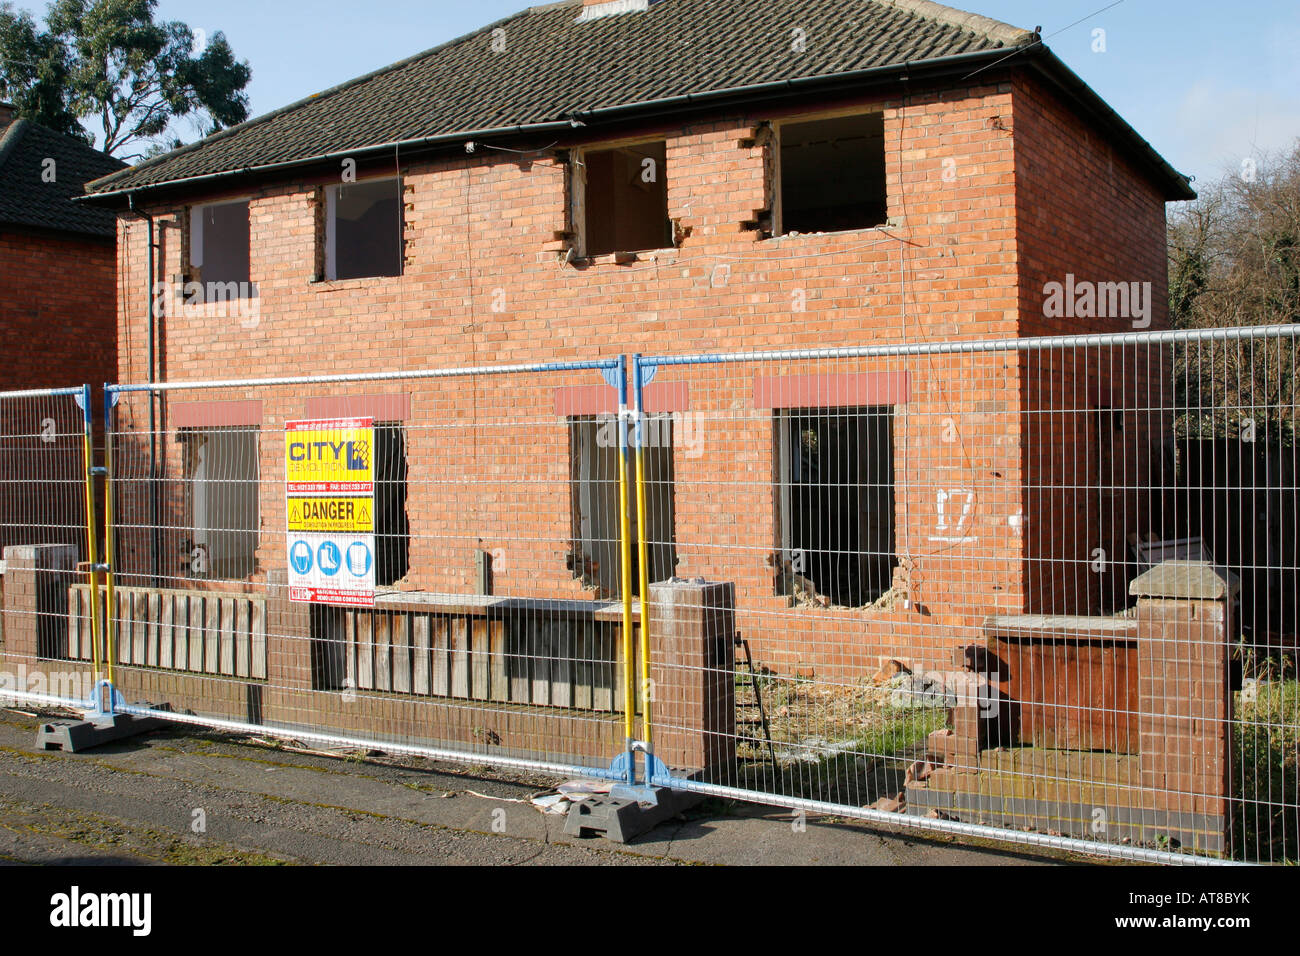 Council housing in the process of being demolished in St. Pauls, Cheltenham, UK - Stock Image